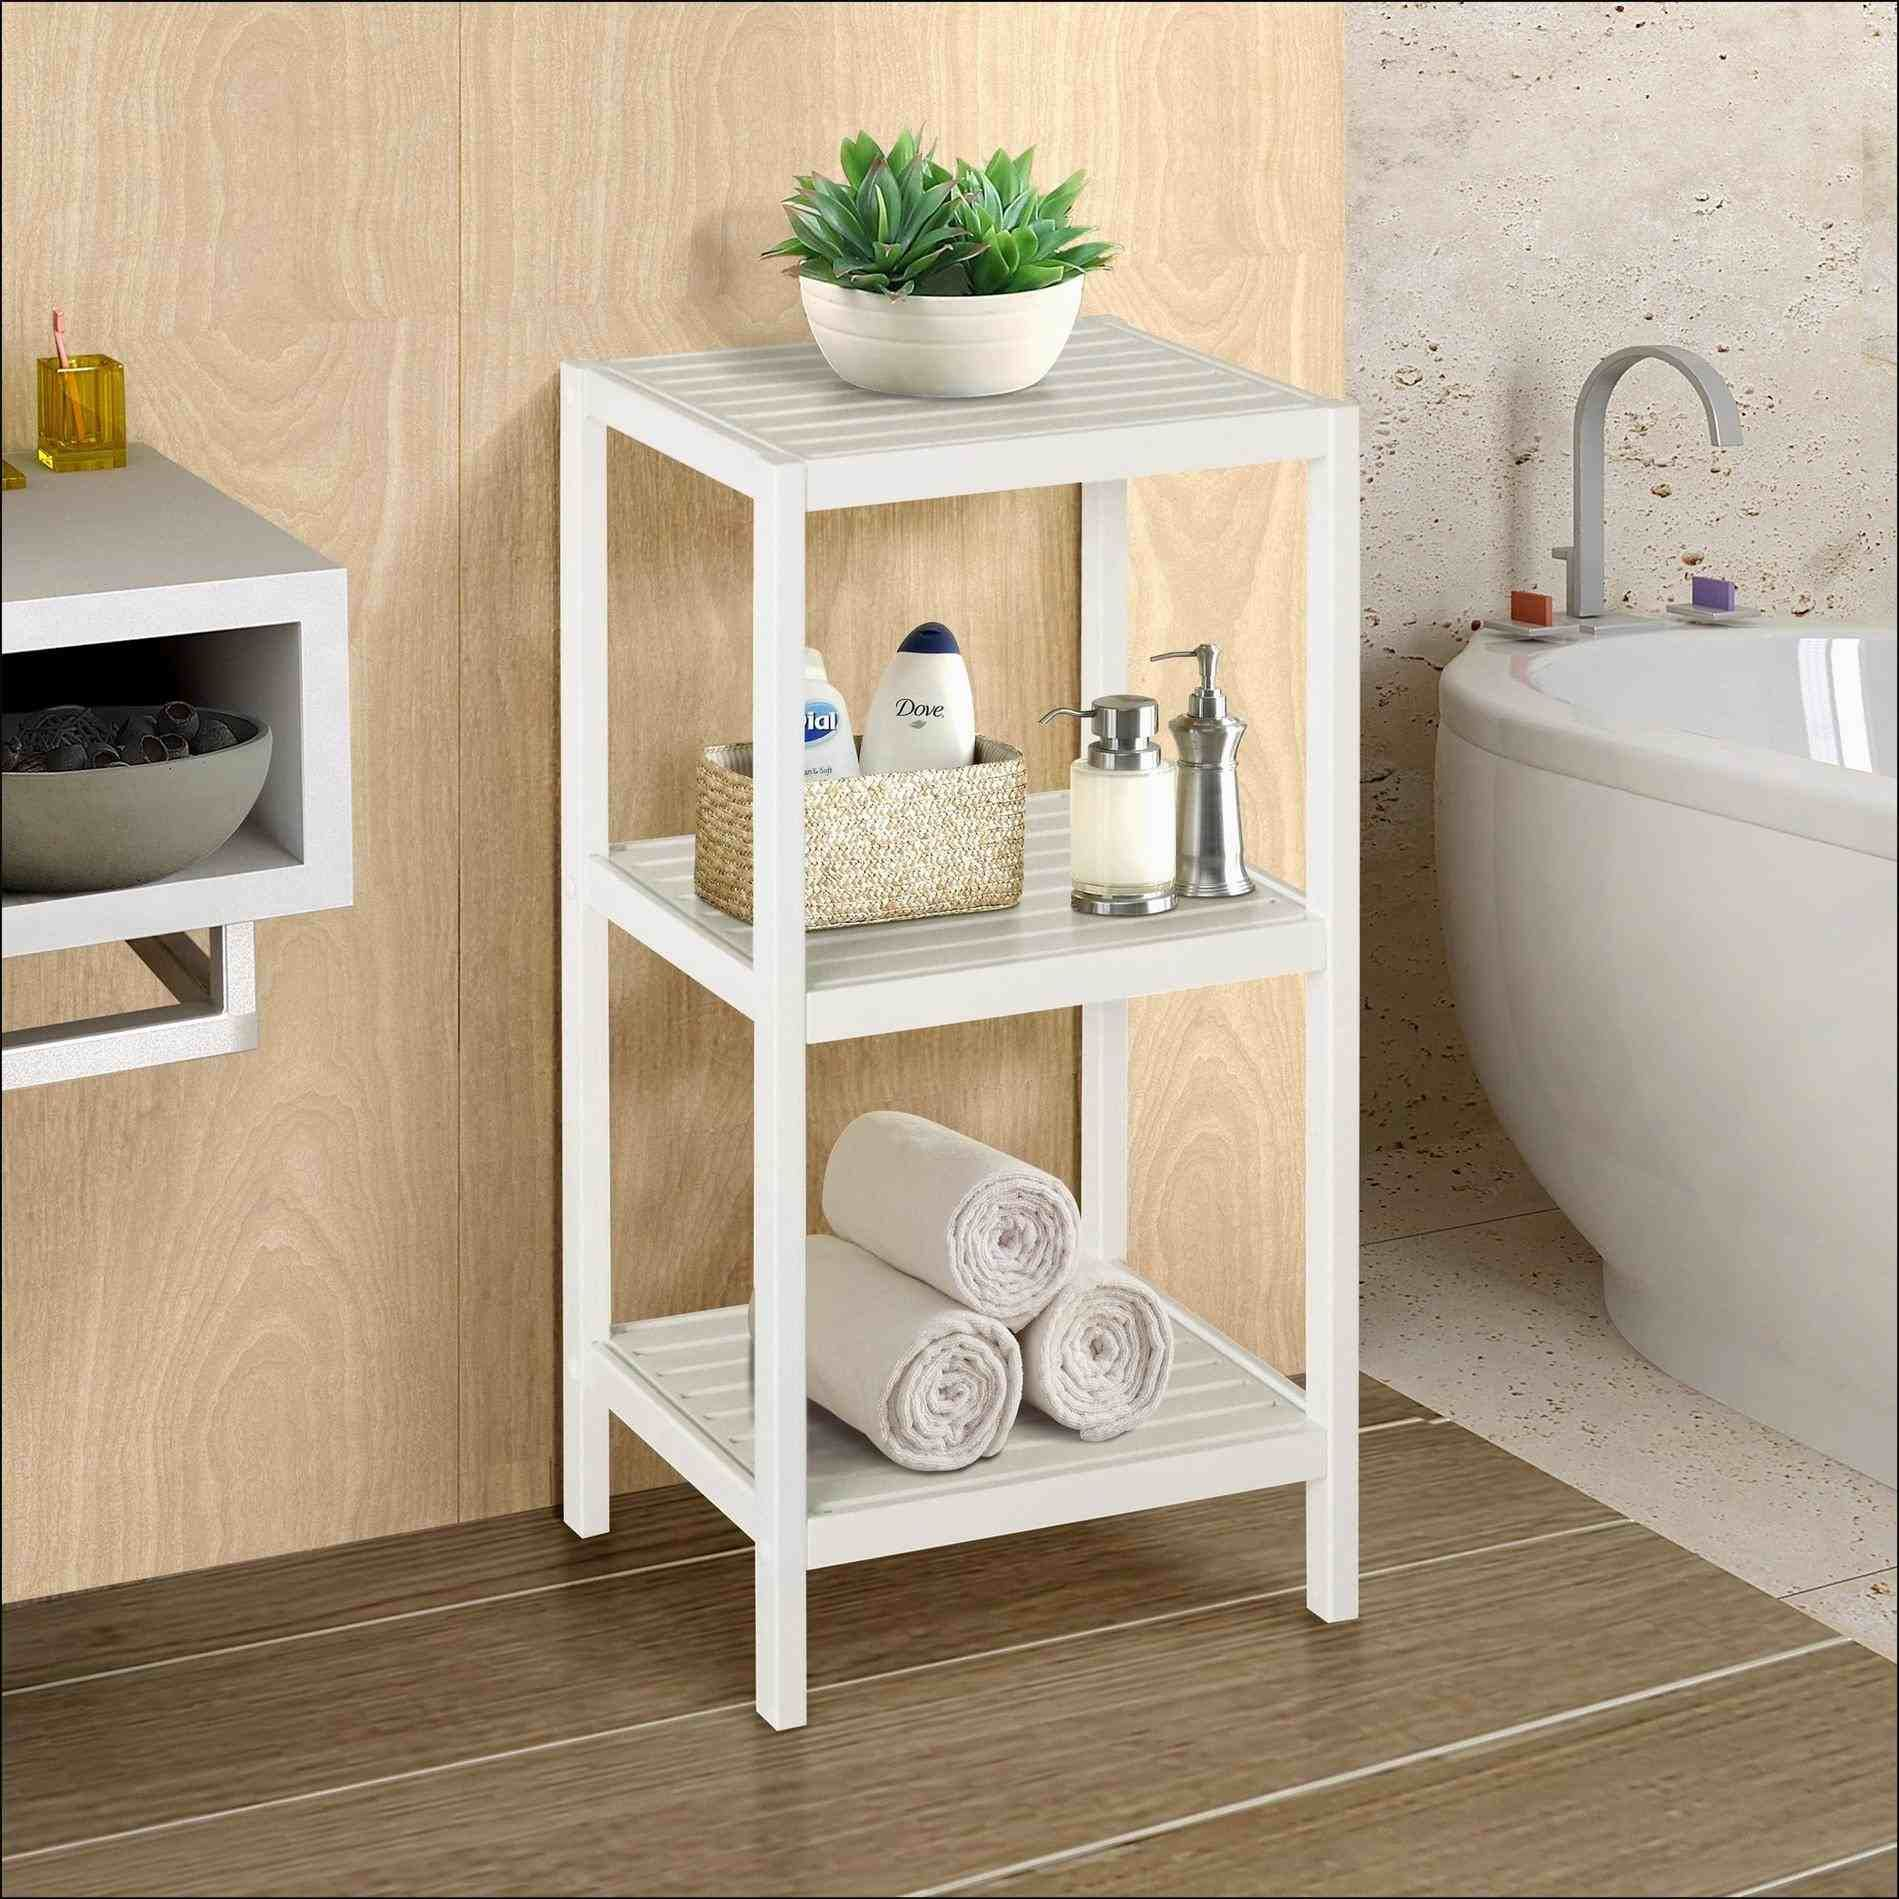 New Post Bathroom Shelving Units Visit Bathroomremodelideassclub